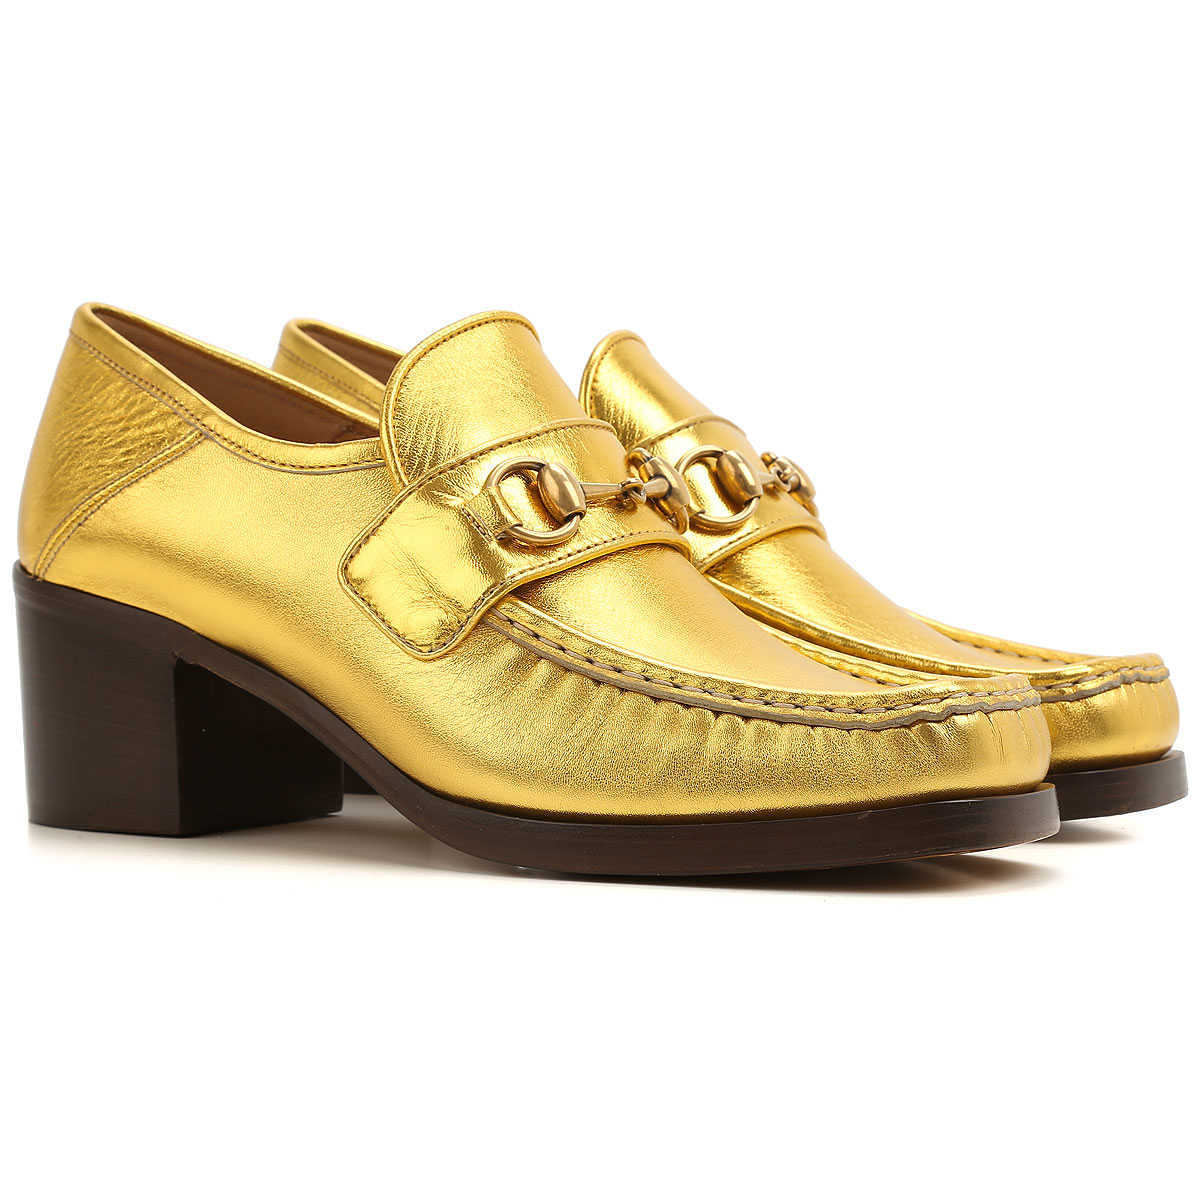 Gucci Loafers for Women Gold Canada - GOOFASH - Womens FLAT SHOES